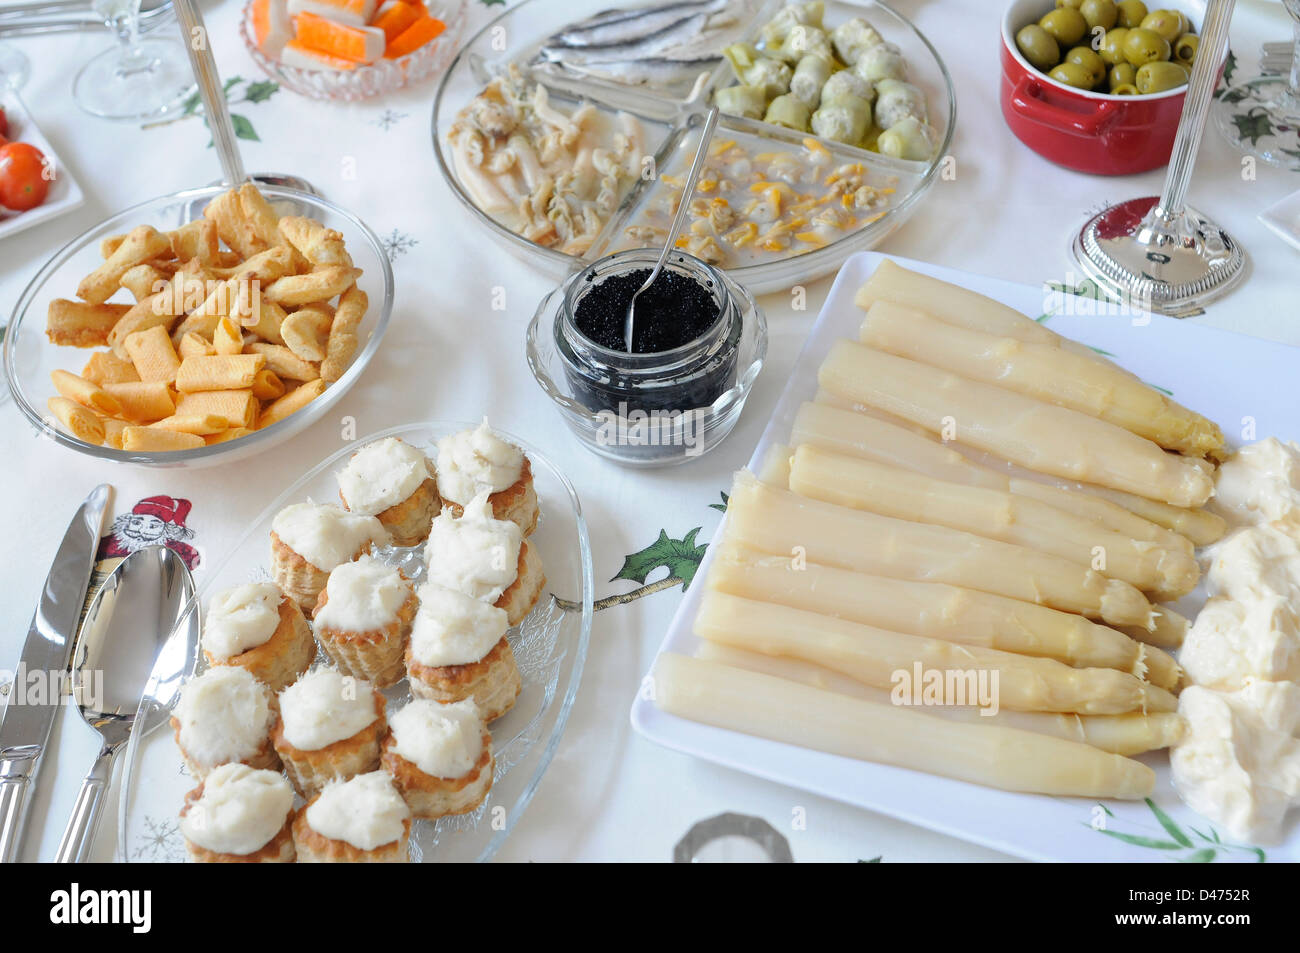 Christmas laid table appetizer snack aperitif  olives cockles artichokes, vol au vent with cod asparagus with mayonnaise, - Stock Image